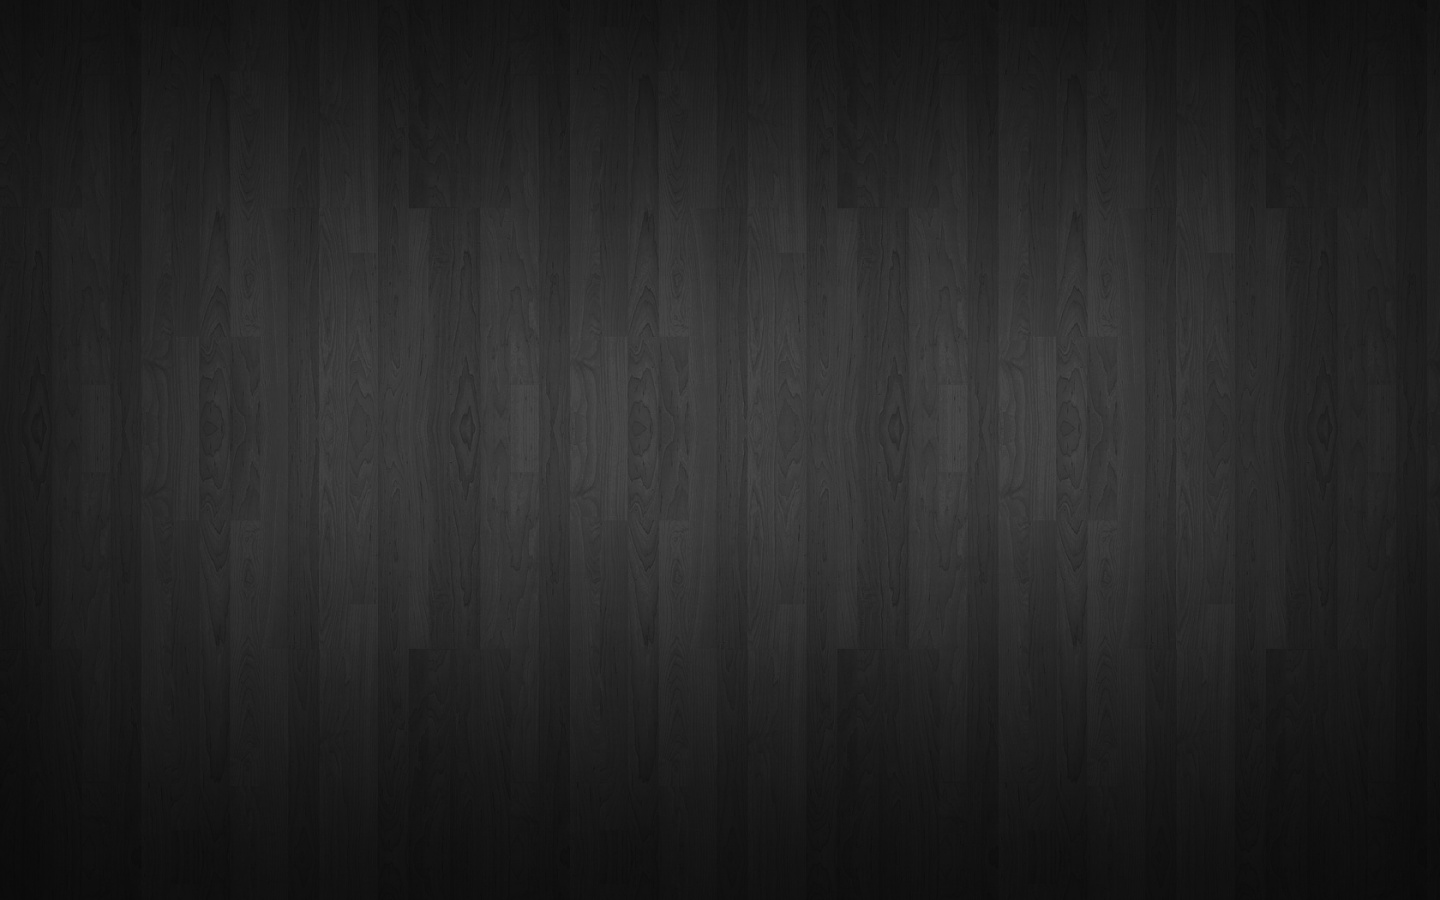 black screen wallpaper 1A4 | yayapz